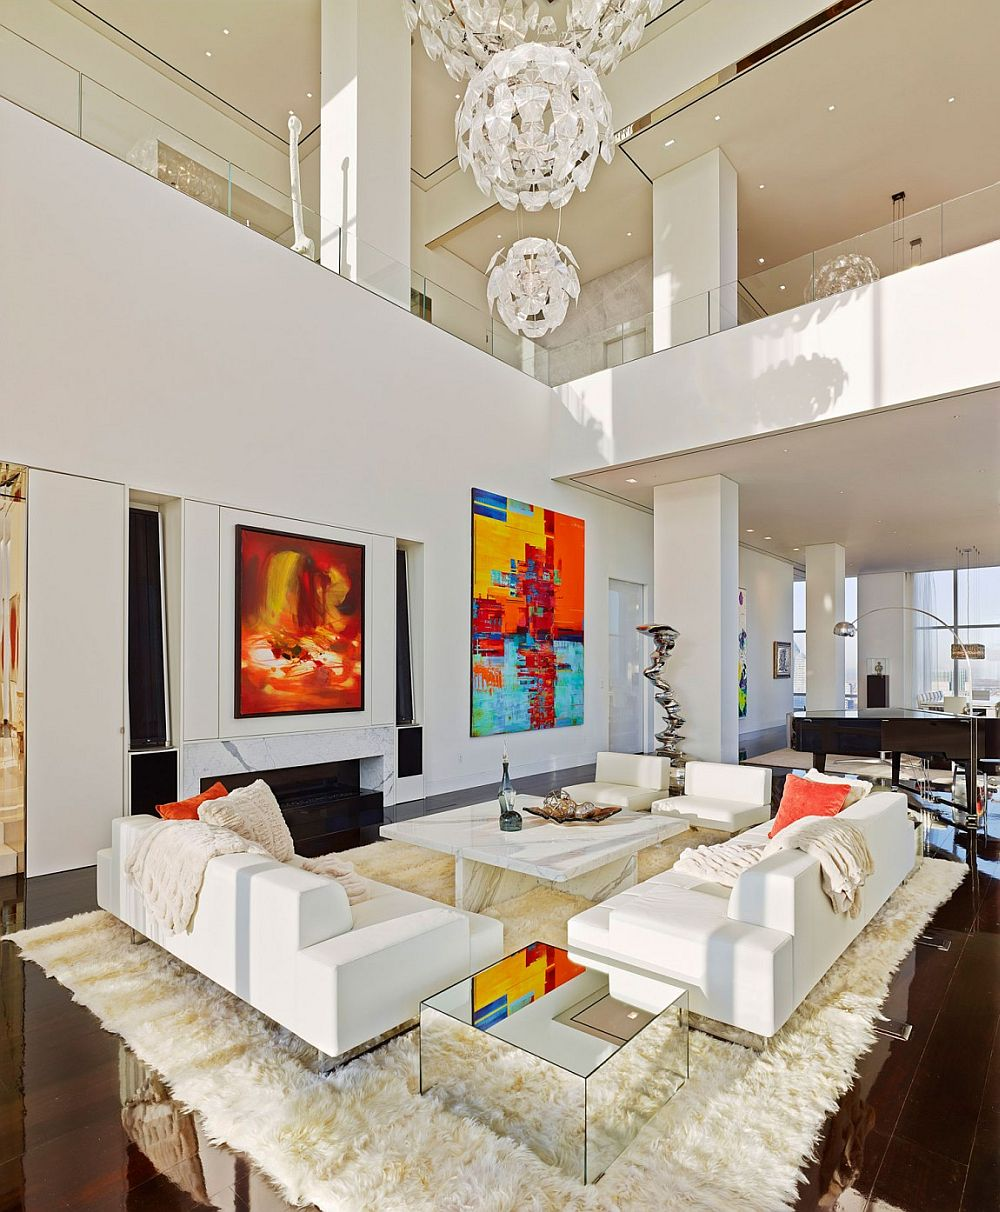 New Home Designs Latest Luxury Living Rooms Interior: Breathtaking New York City Penthouse Leaves You Awestruck